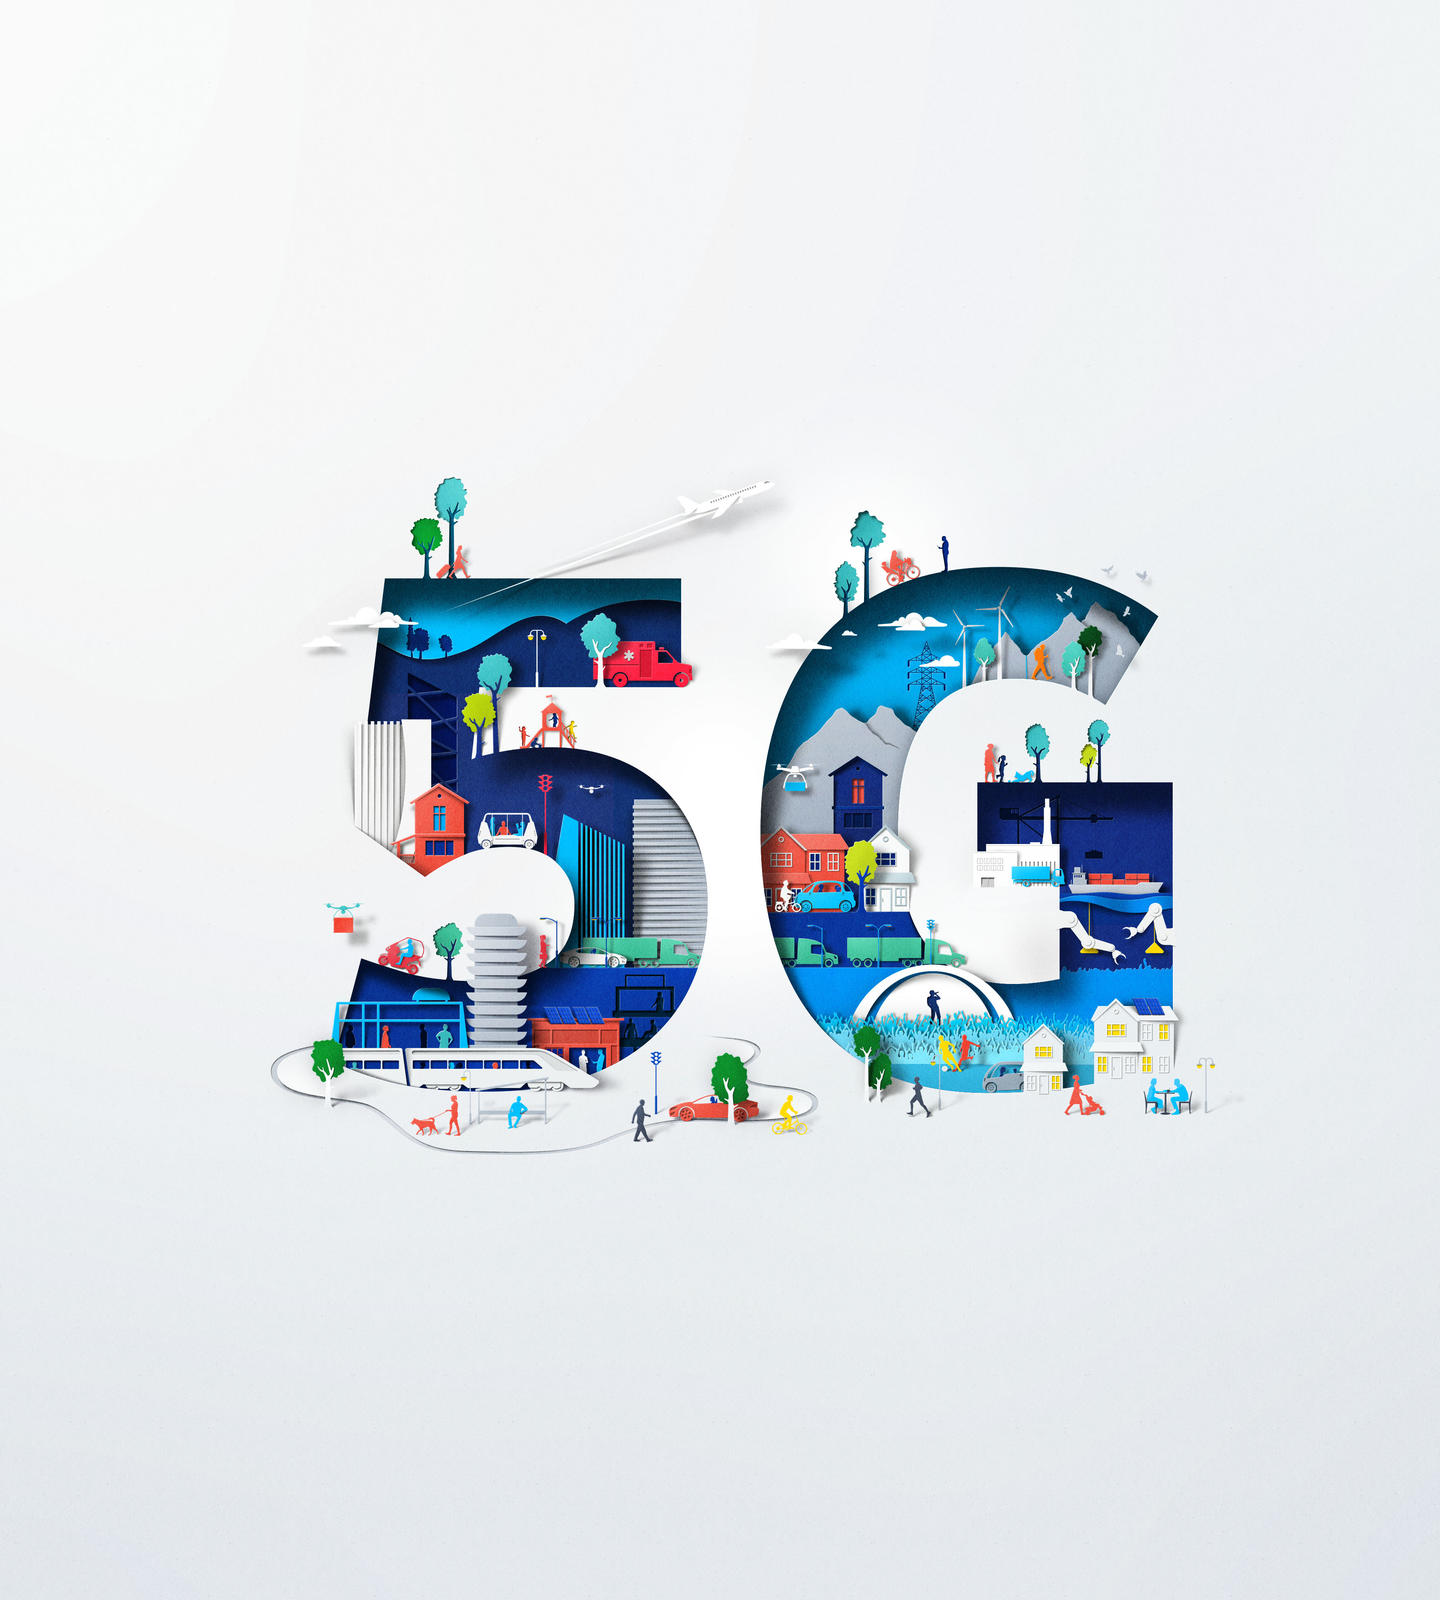 Nokia awards 5G deal with Vodafone New Zealand